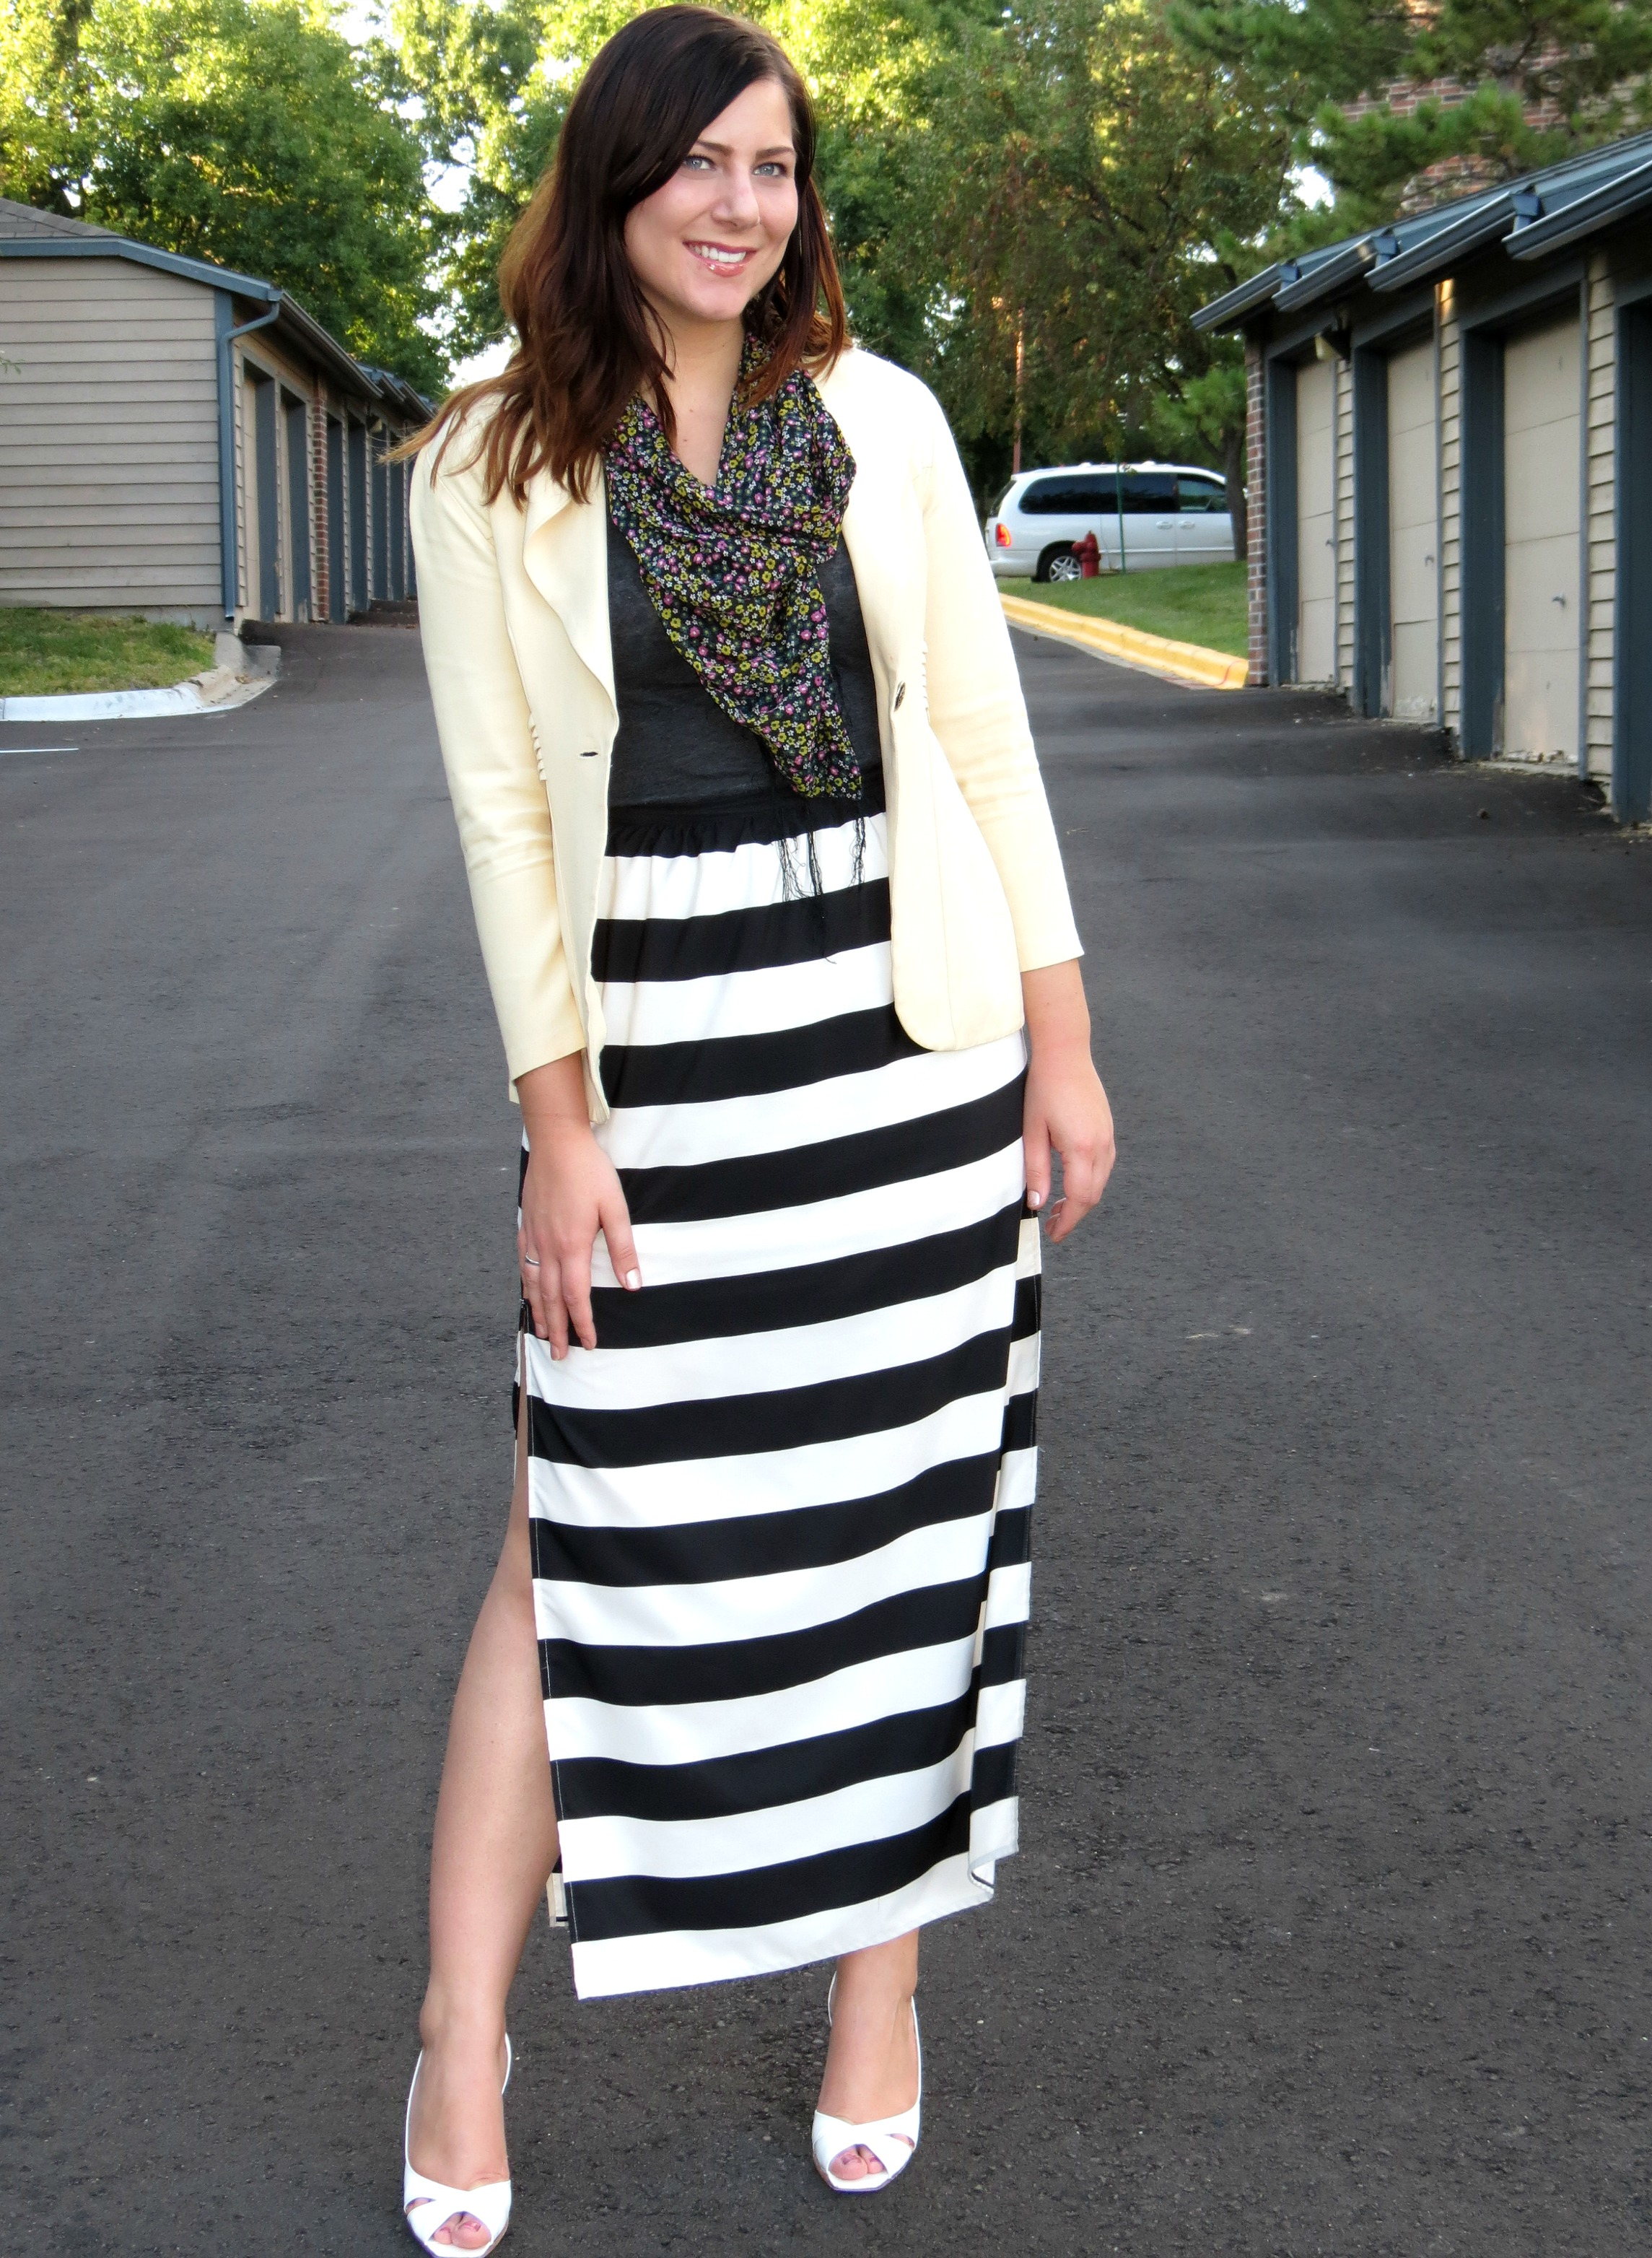 Striped Skirt Long - Dress Ala